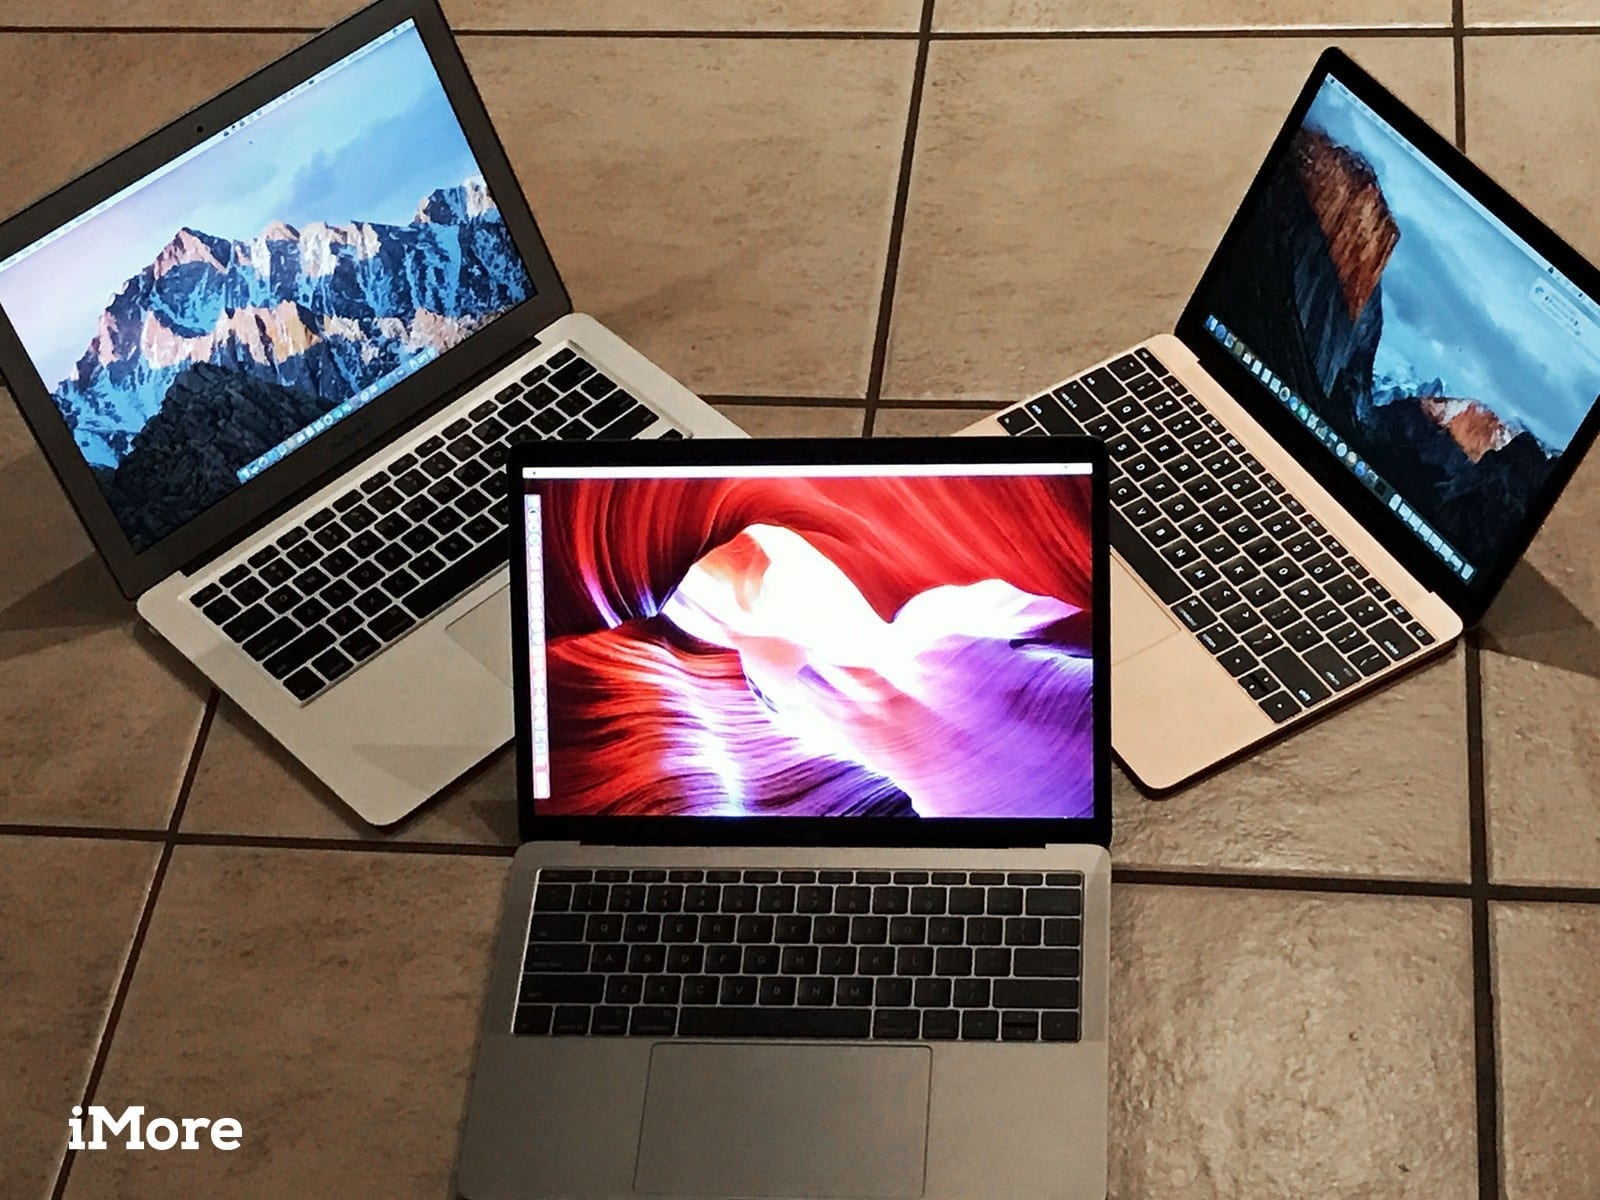 How to transfer files from your old Mac to your new Mac